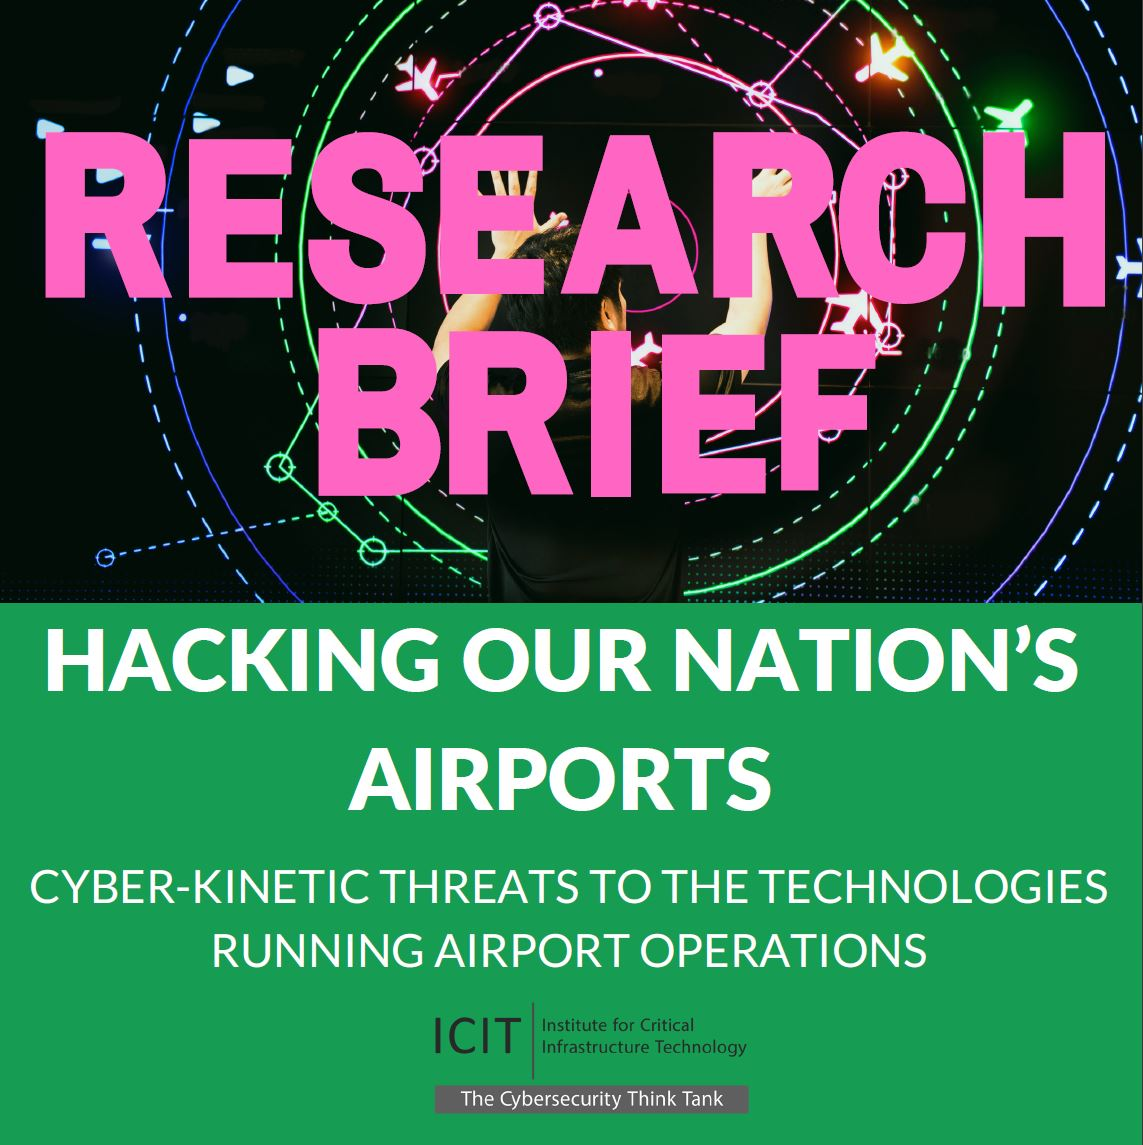 icit, institute for critical infrastructure technology, airport, faa, airplane